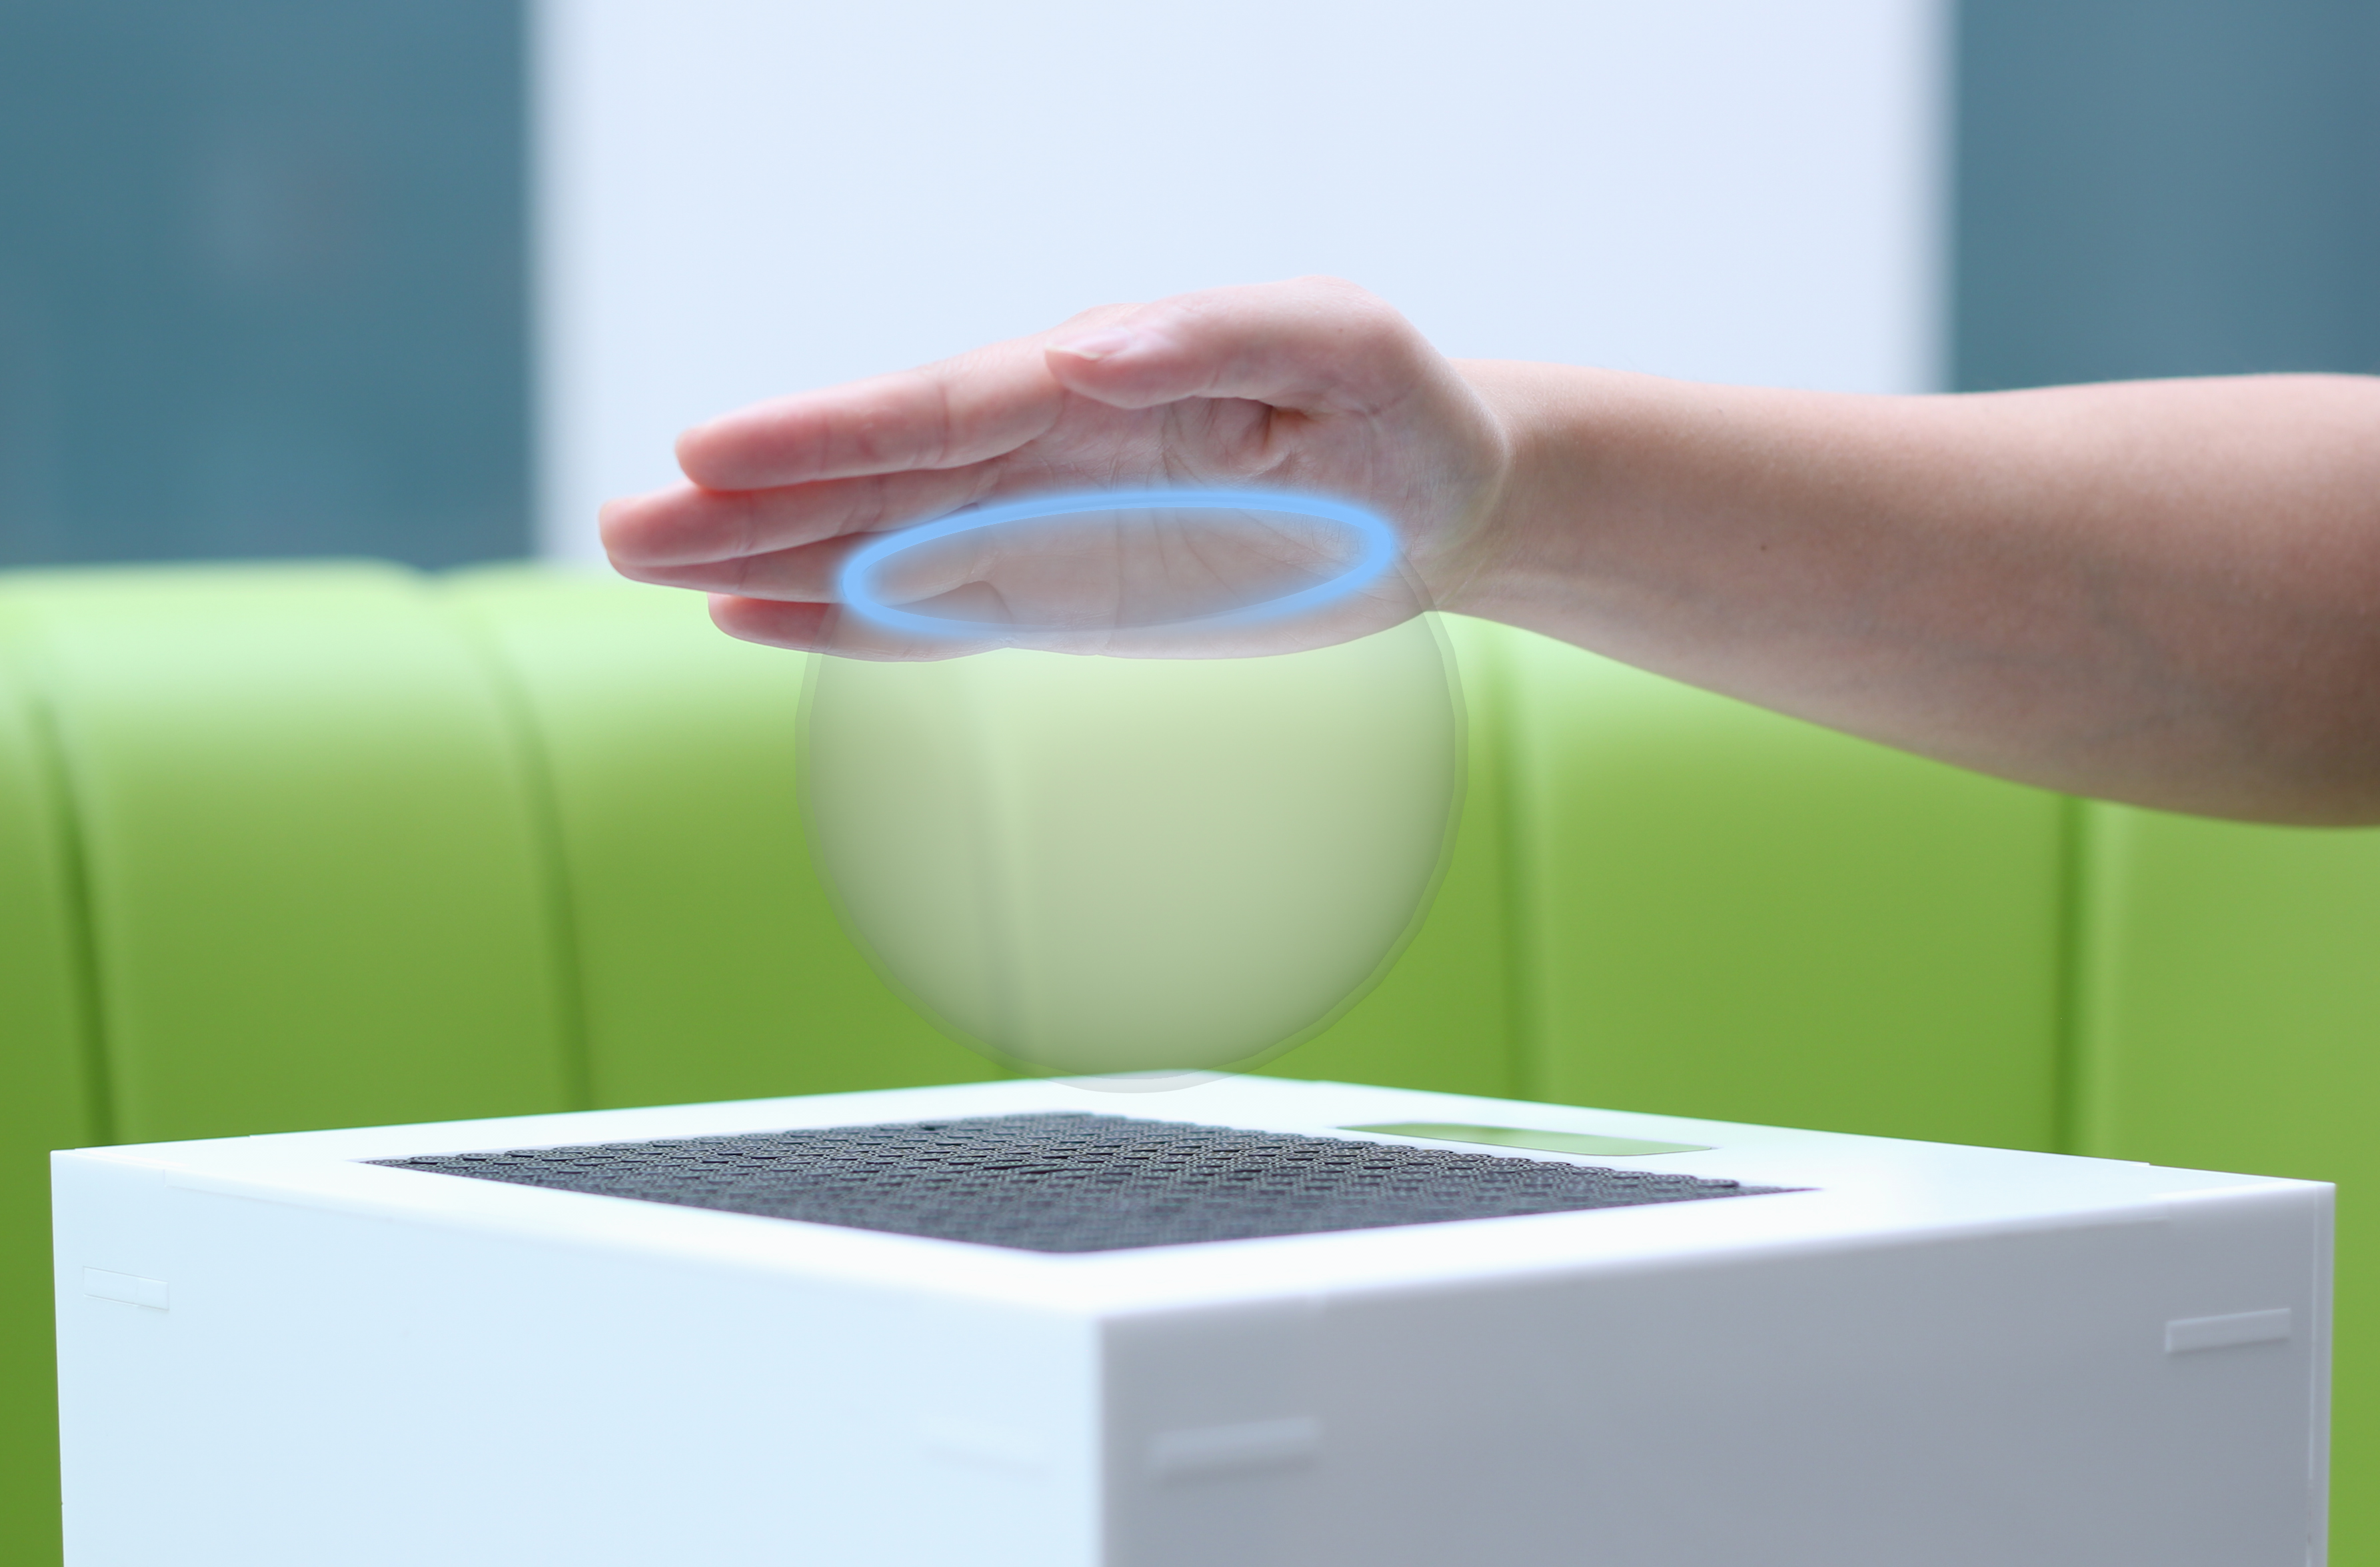 Figure 5 - Ultrahaptics' technology lets the user 'feel' virtual objects in mid-air.